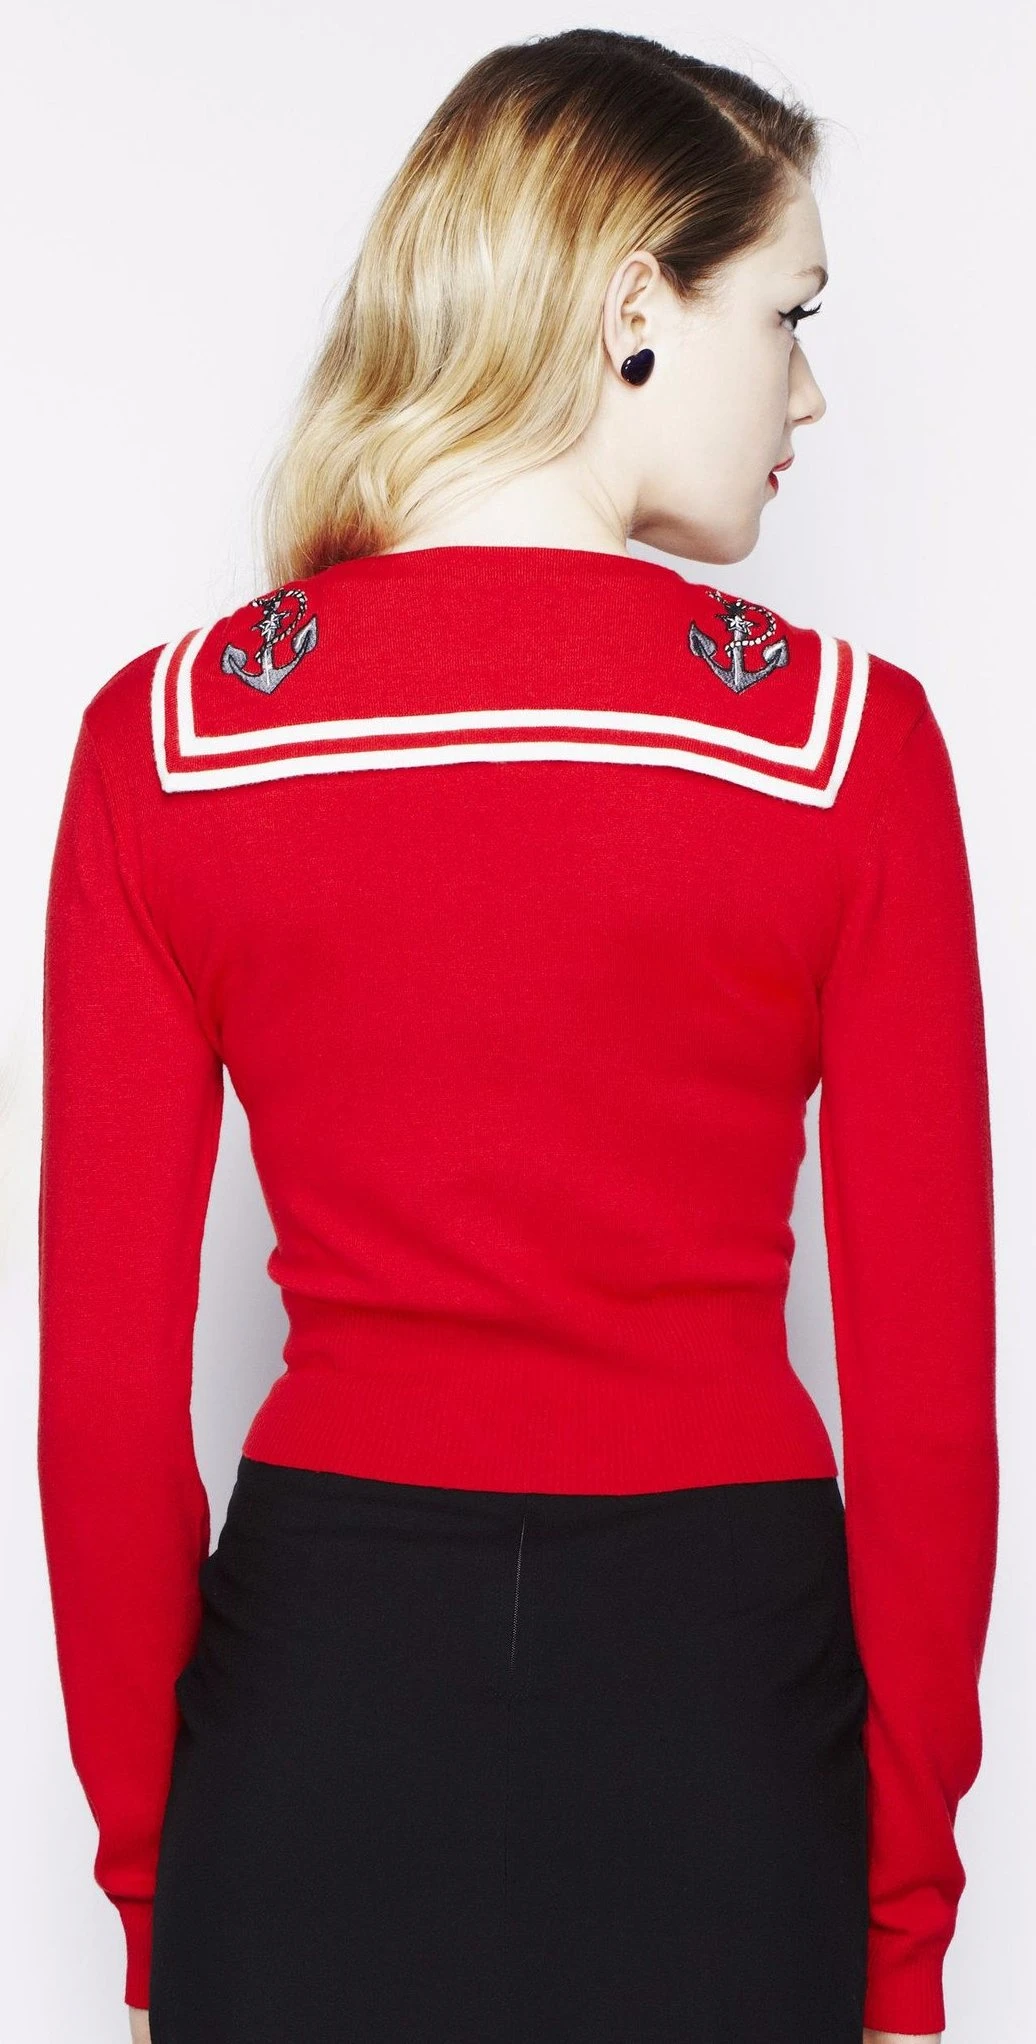 Hell Bunny 40s 50s Landlubber Sailor Red Nautical Cardigan